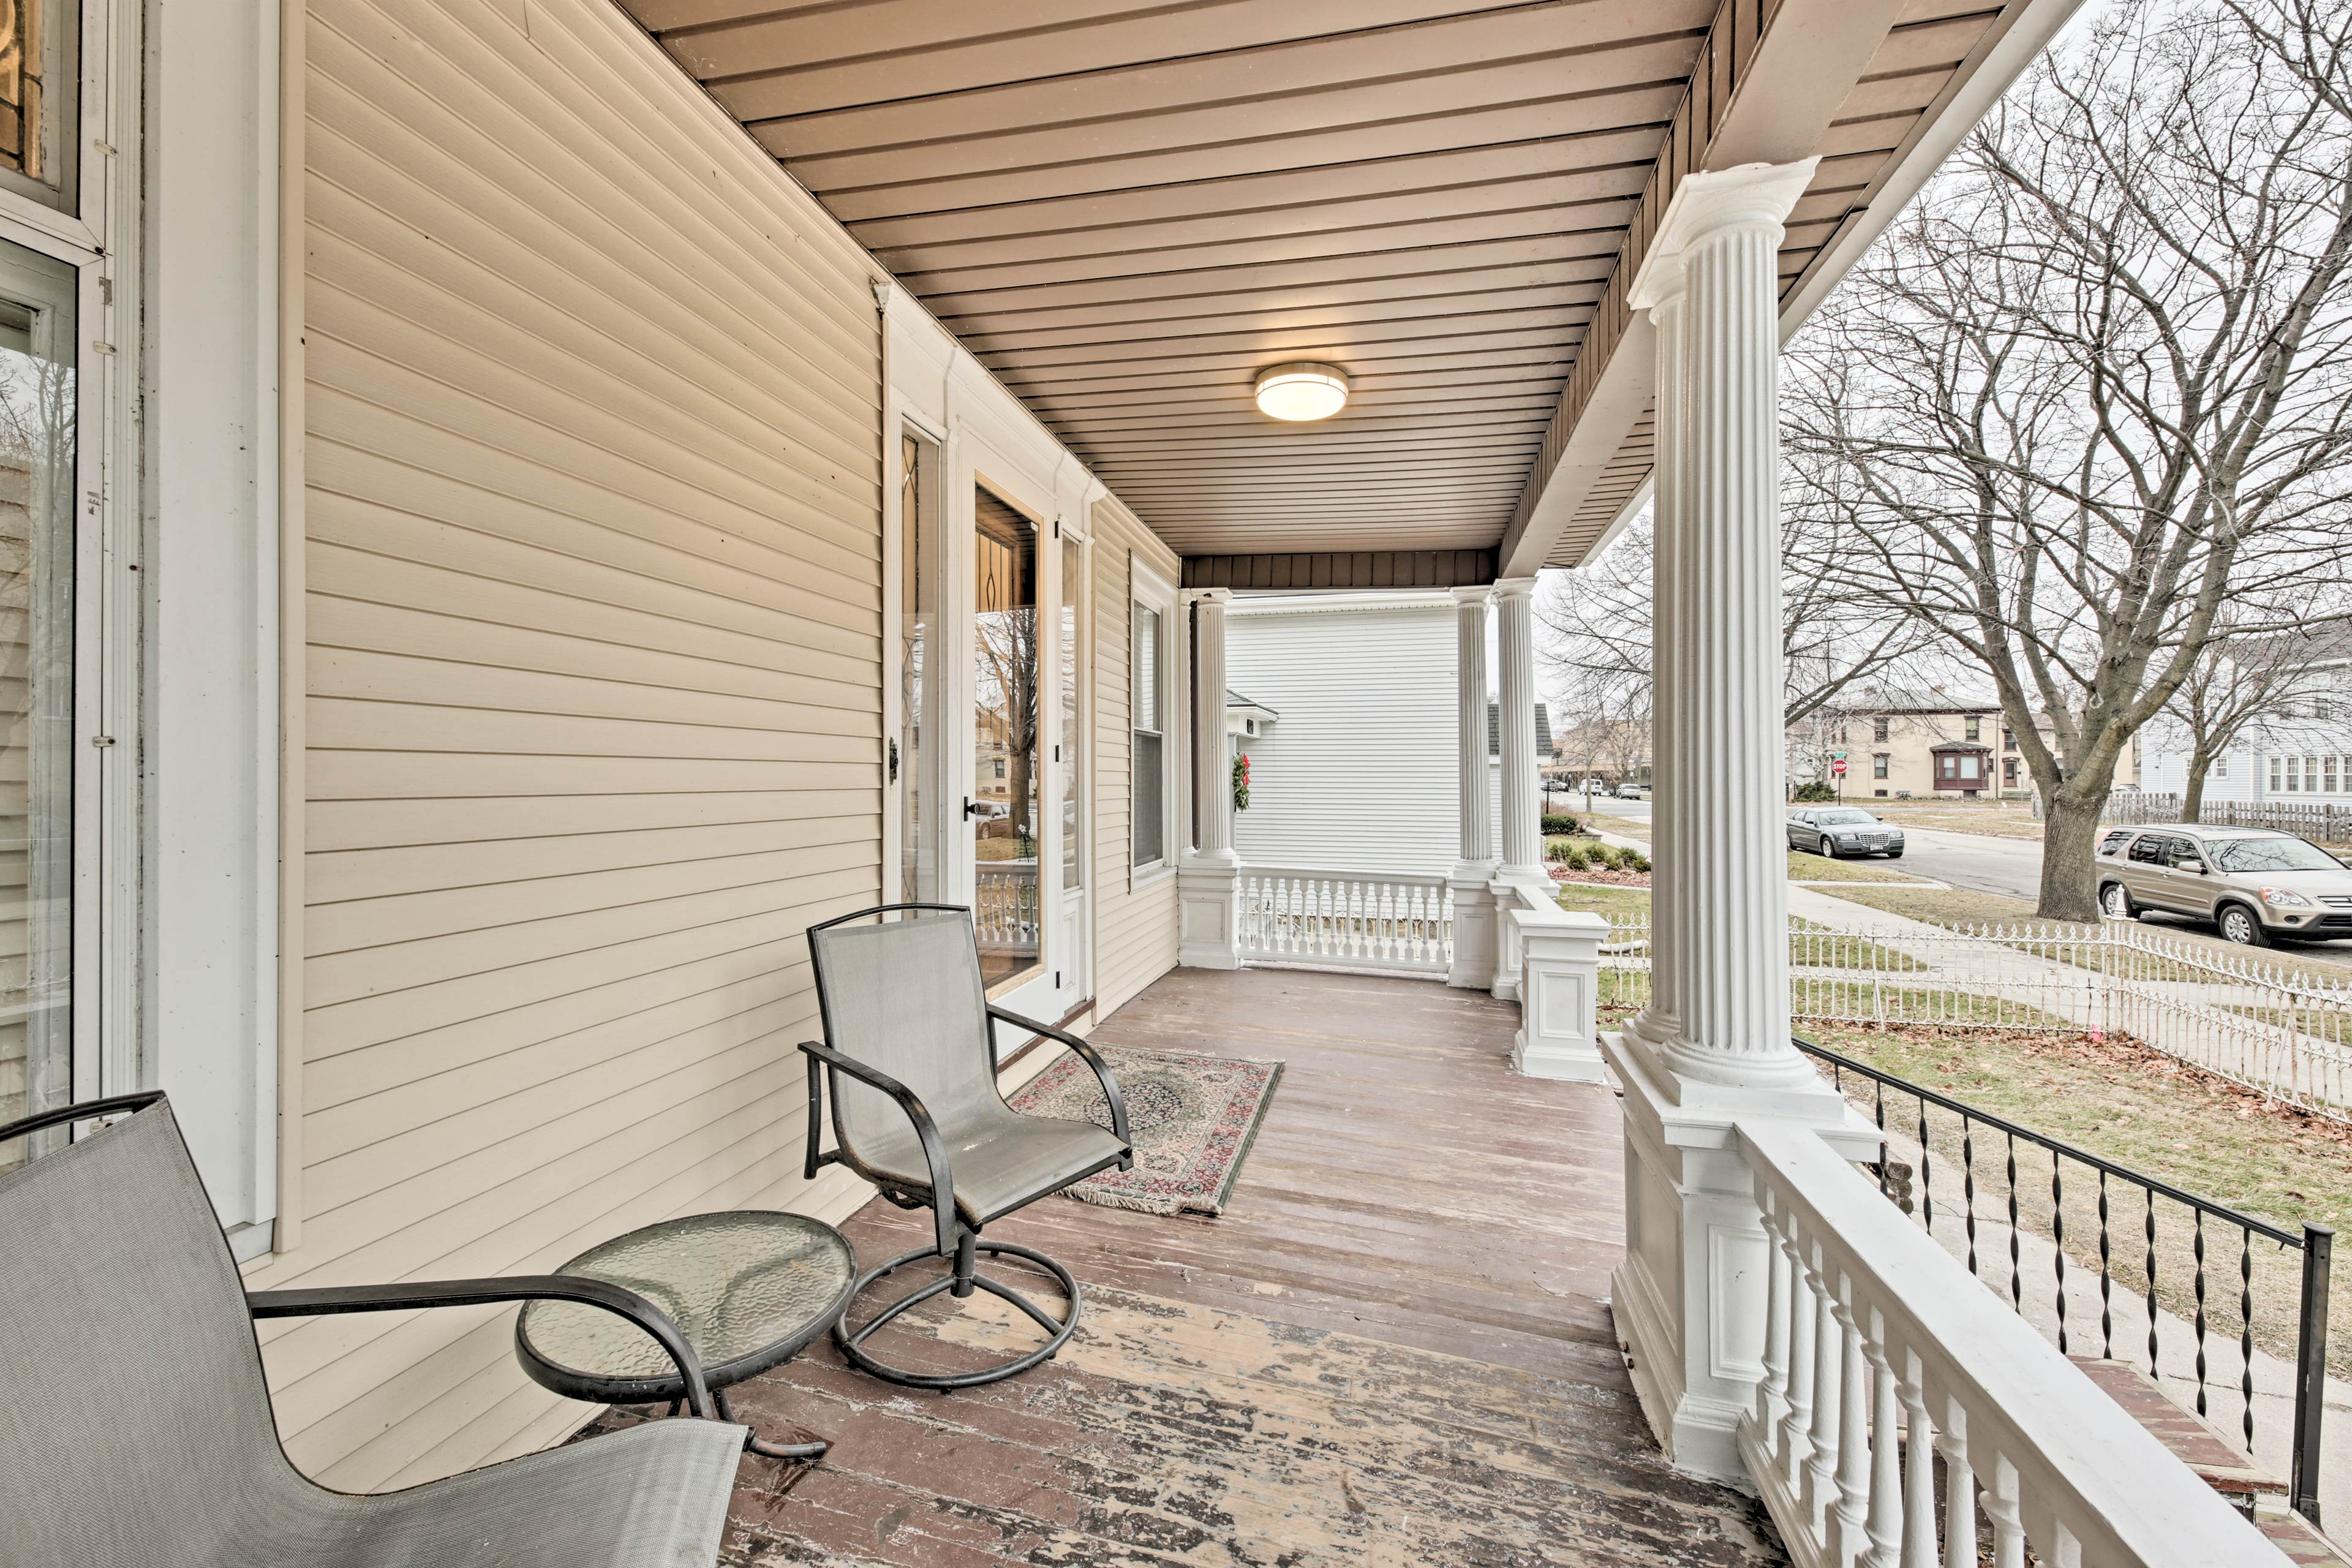 Sip your morning coffee on your covered front porch & admire the peaceful area!